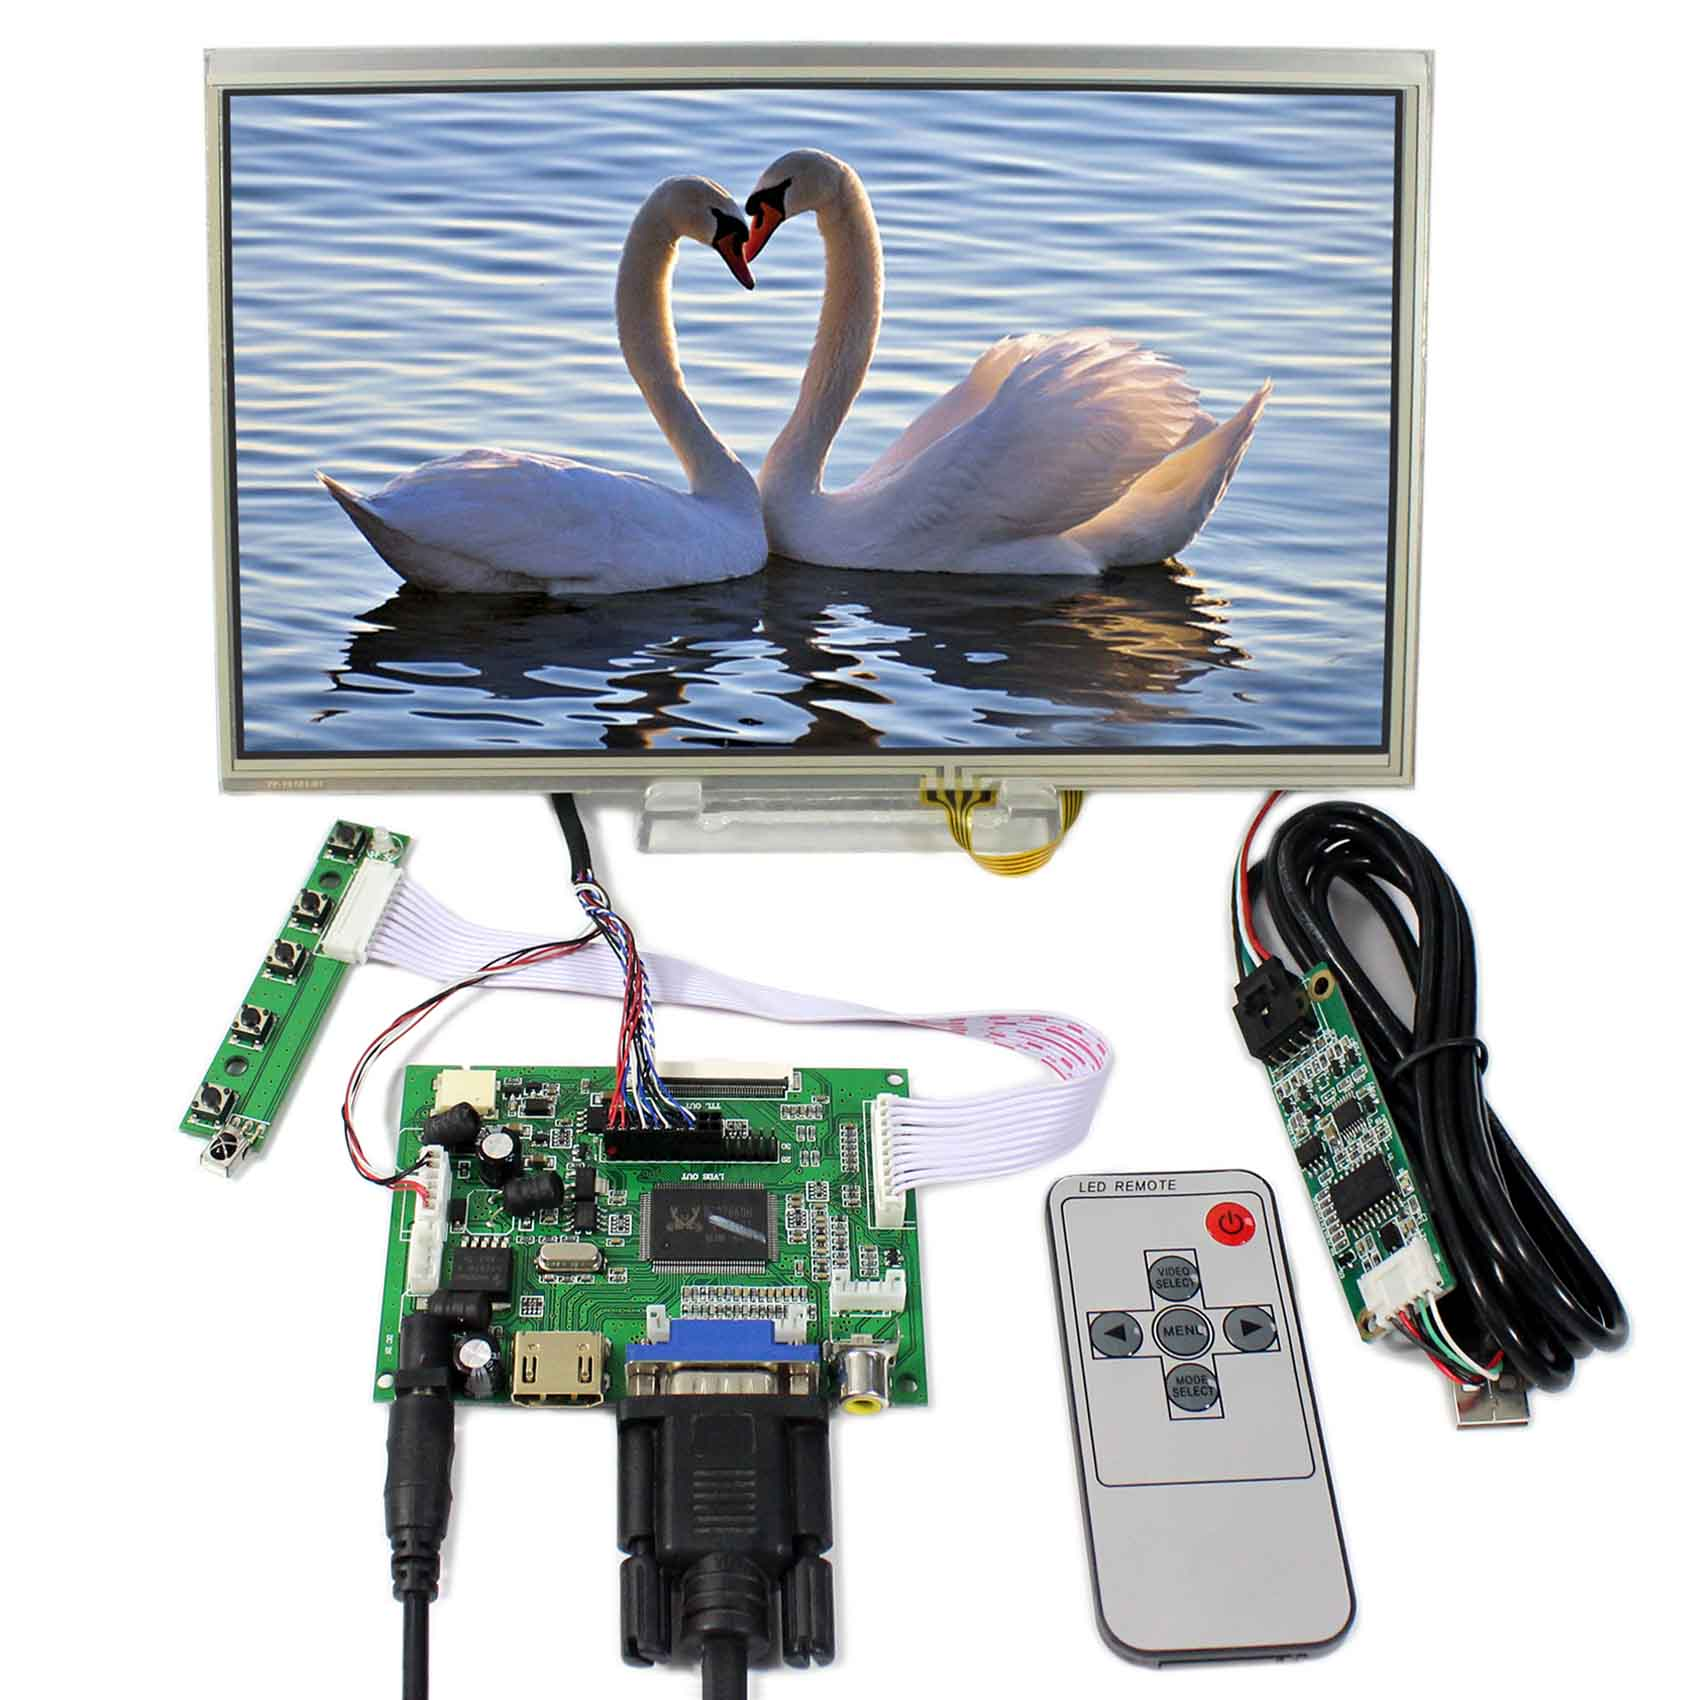 HDMI VGA 2AV LCD Controller Board+10.1inch B101AW03 1024x600 LCD Screen With Touch Panel 8inch zj080na 08a 1024x600 lcd screen vga 2av reversing lcd controller board kyv n2 v1